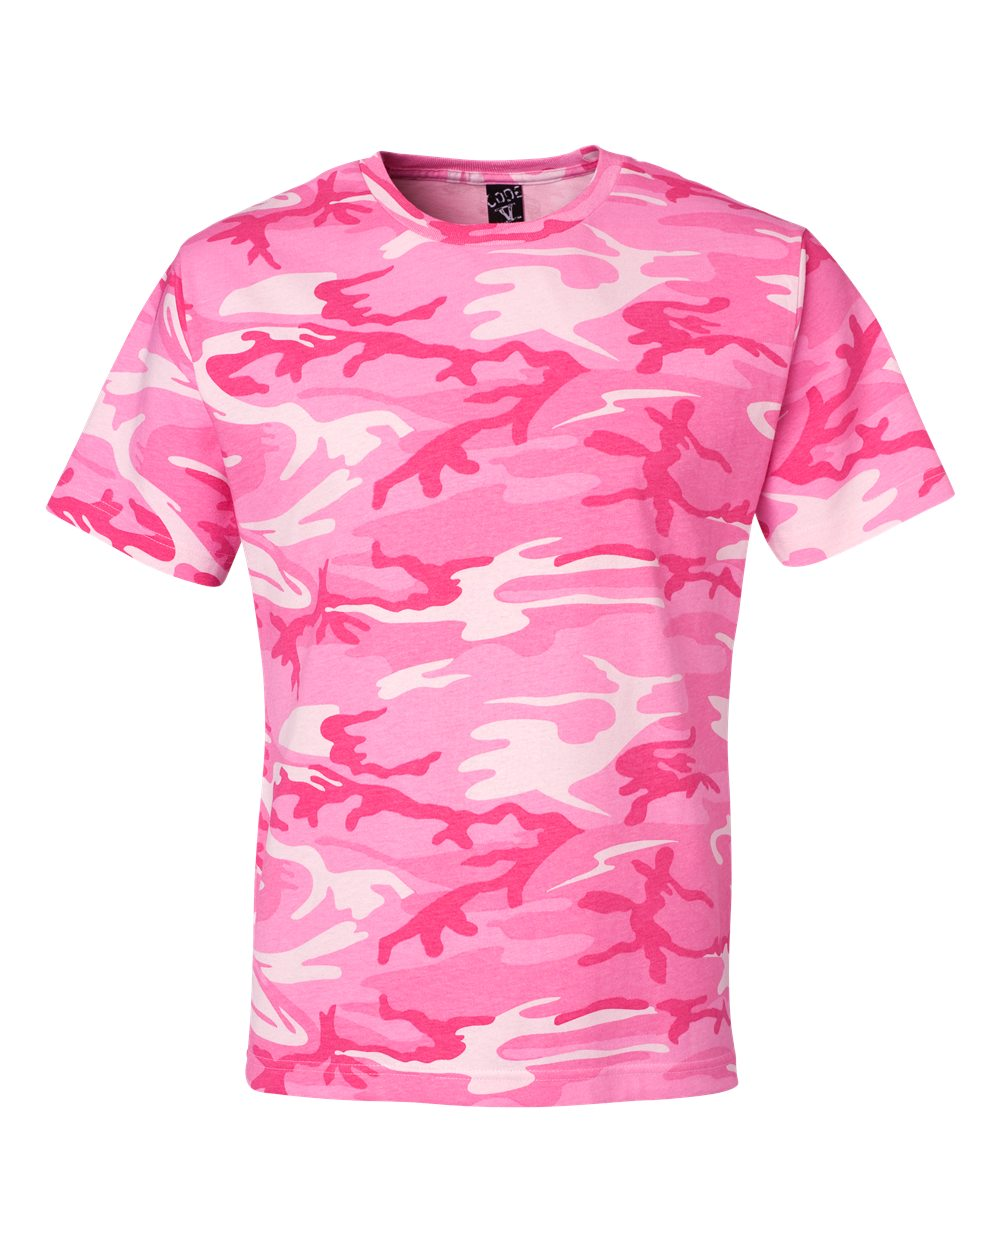 click to view Pink Woodland